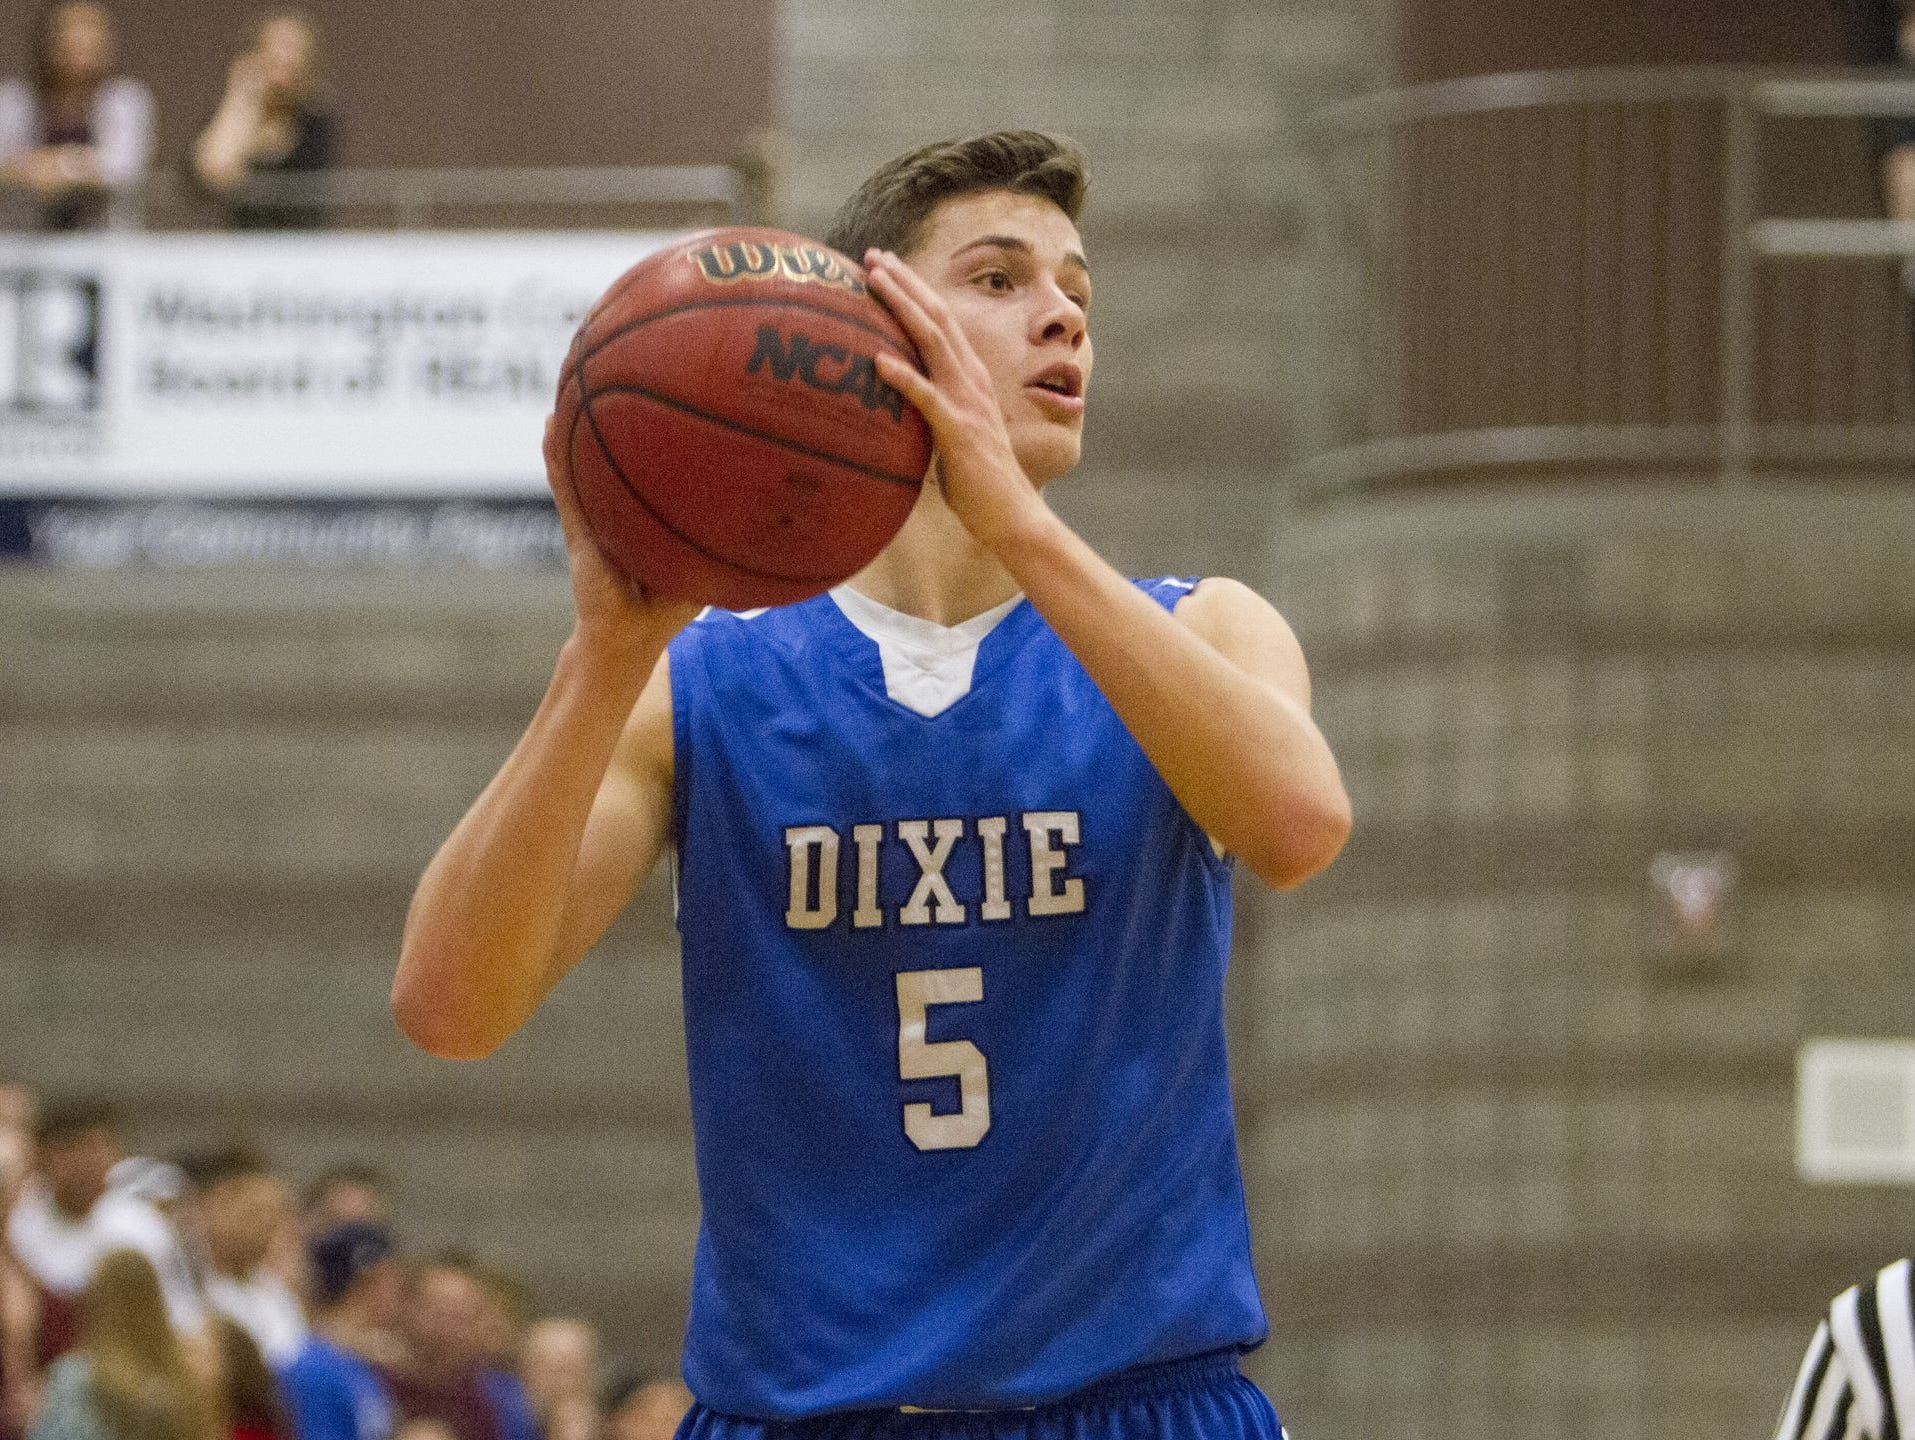 Dixie's Tyler Bennett has hit a number of big shots in his high school career which is why coaches have nicknamed him the LeBron James of Region 9.